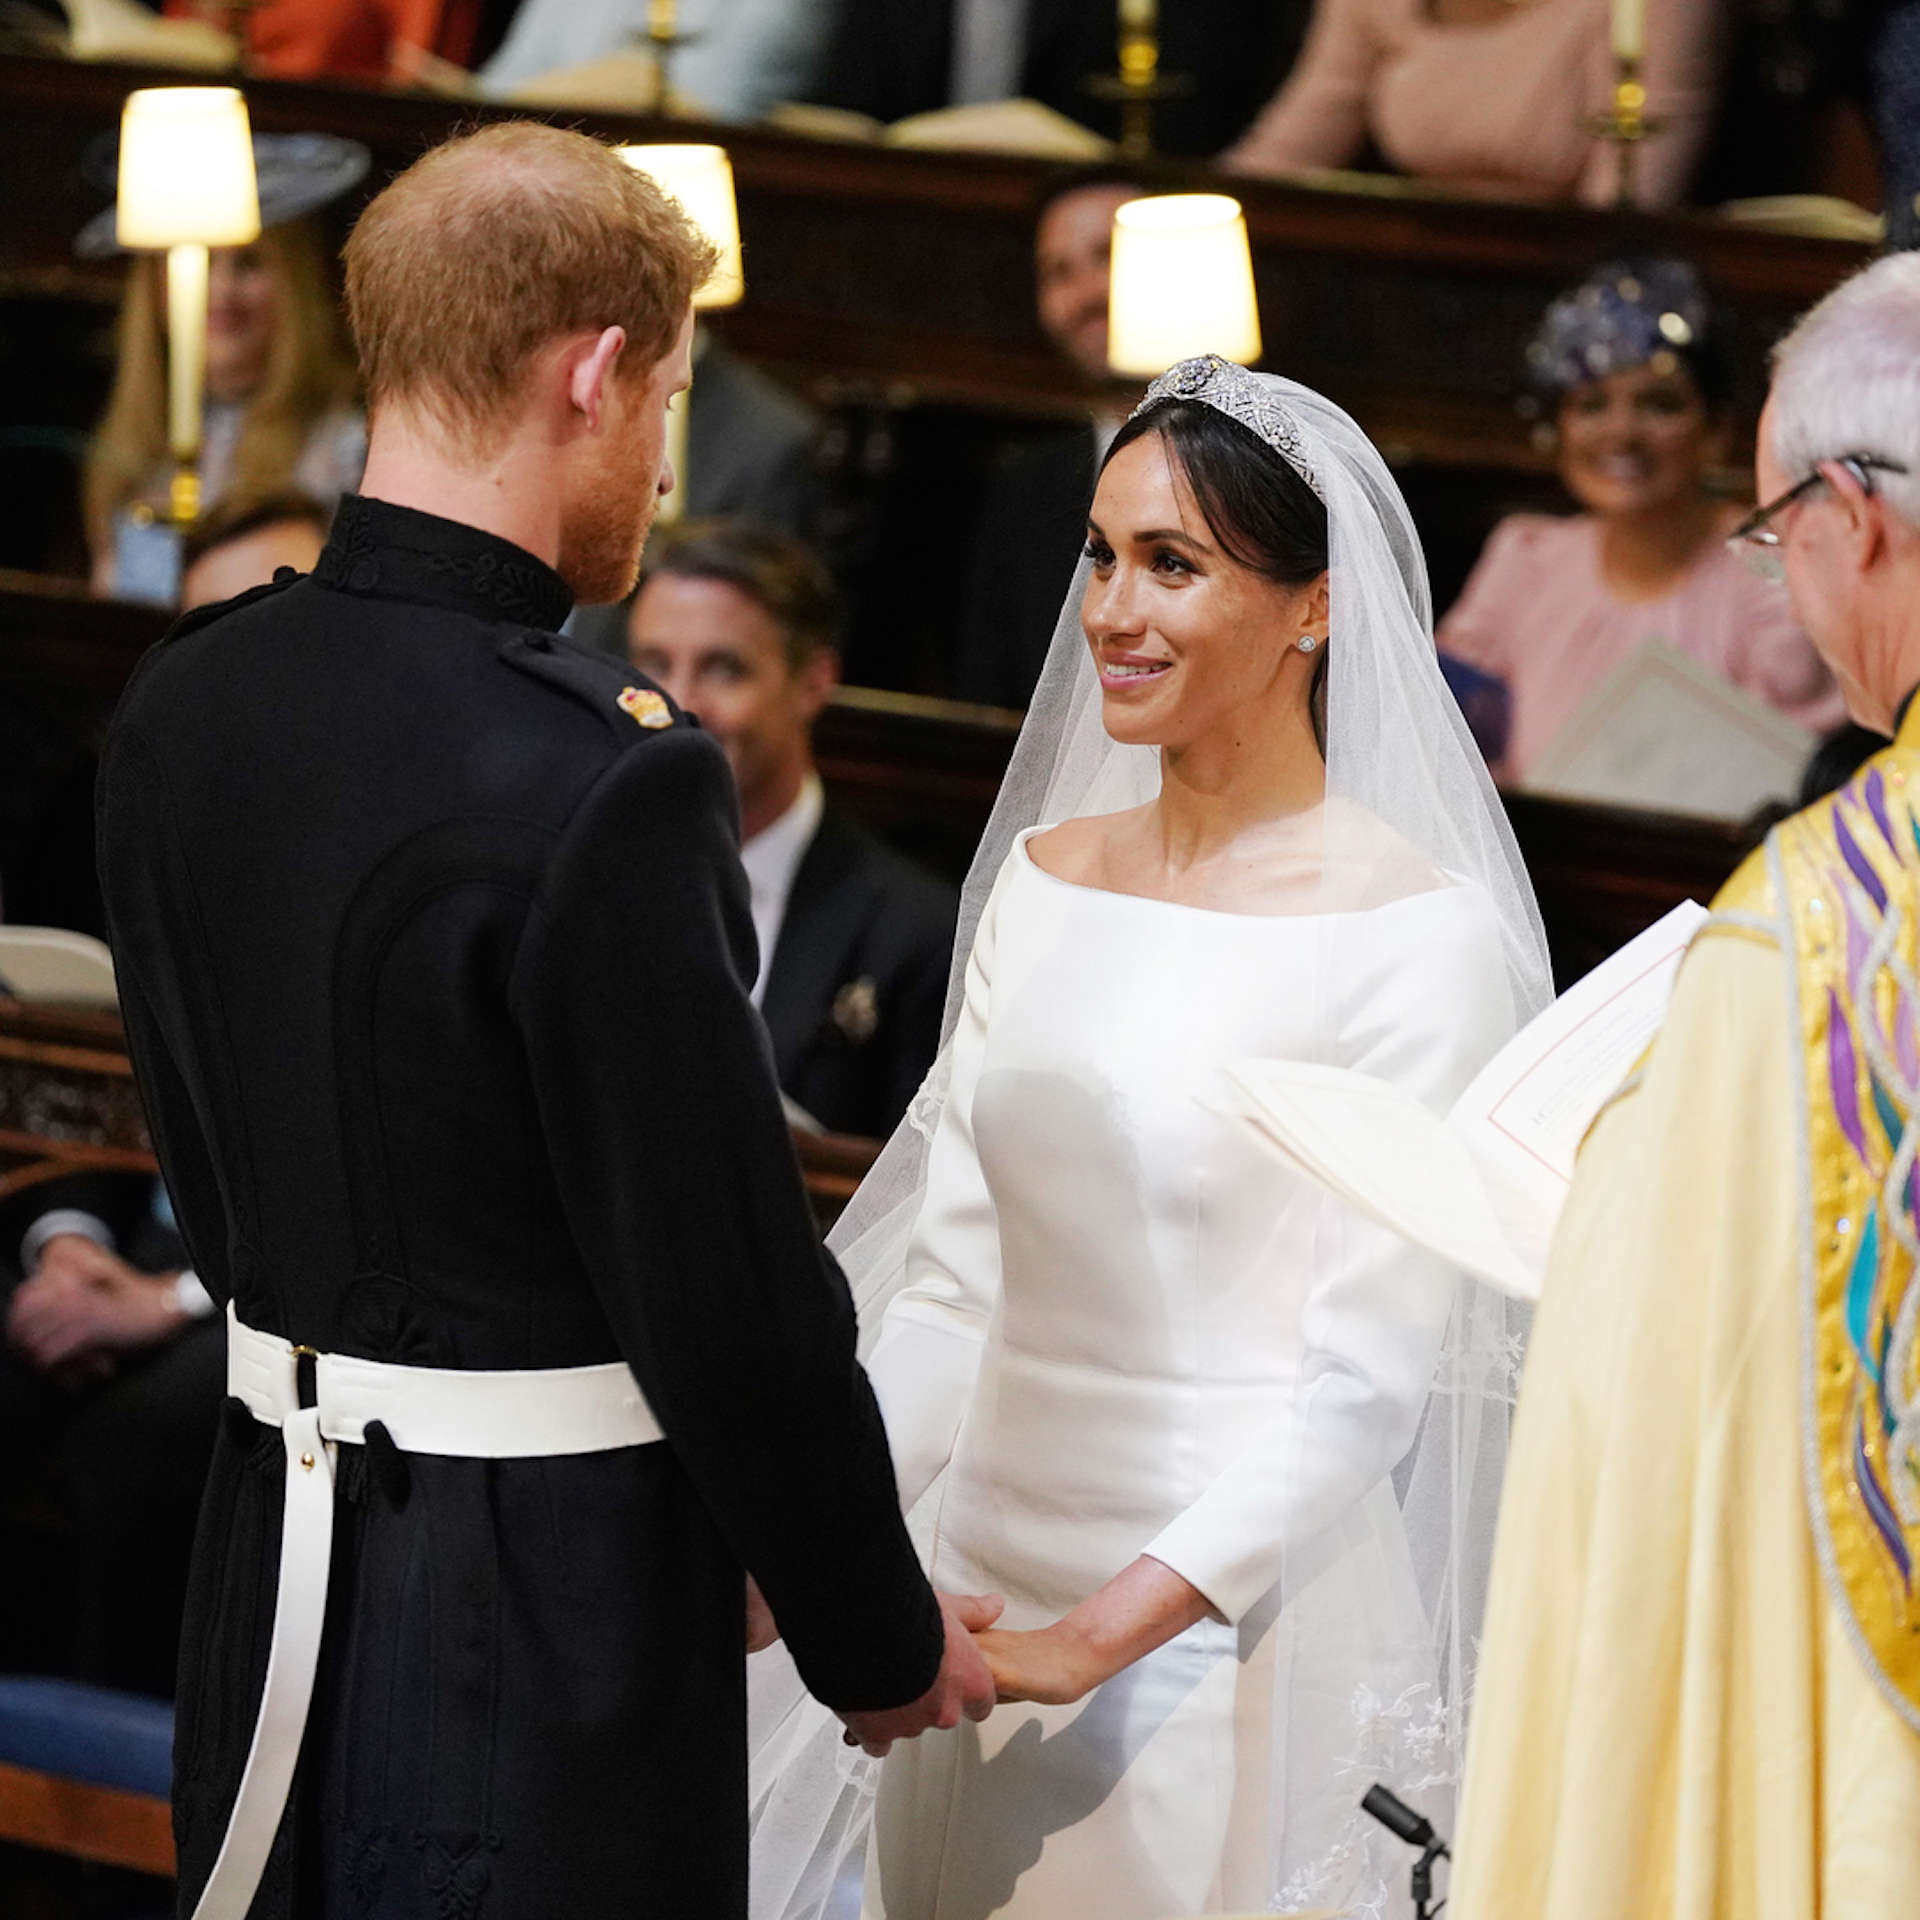 https://s3.amazonaws.com/arc-wordpress-client-uploads/infobae-wp/wp-content/uploads/2018/05/19181018/GENTE-boda-real-principe-harry-meghan-markle-si-quiero.jpg